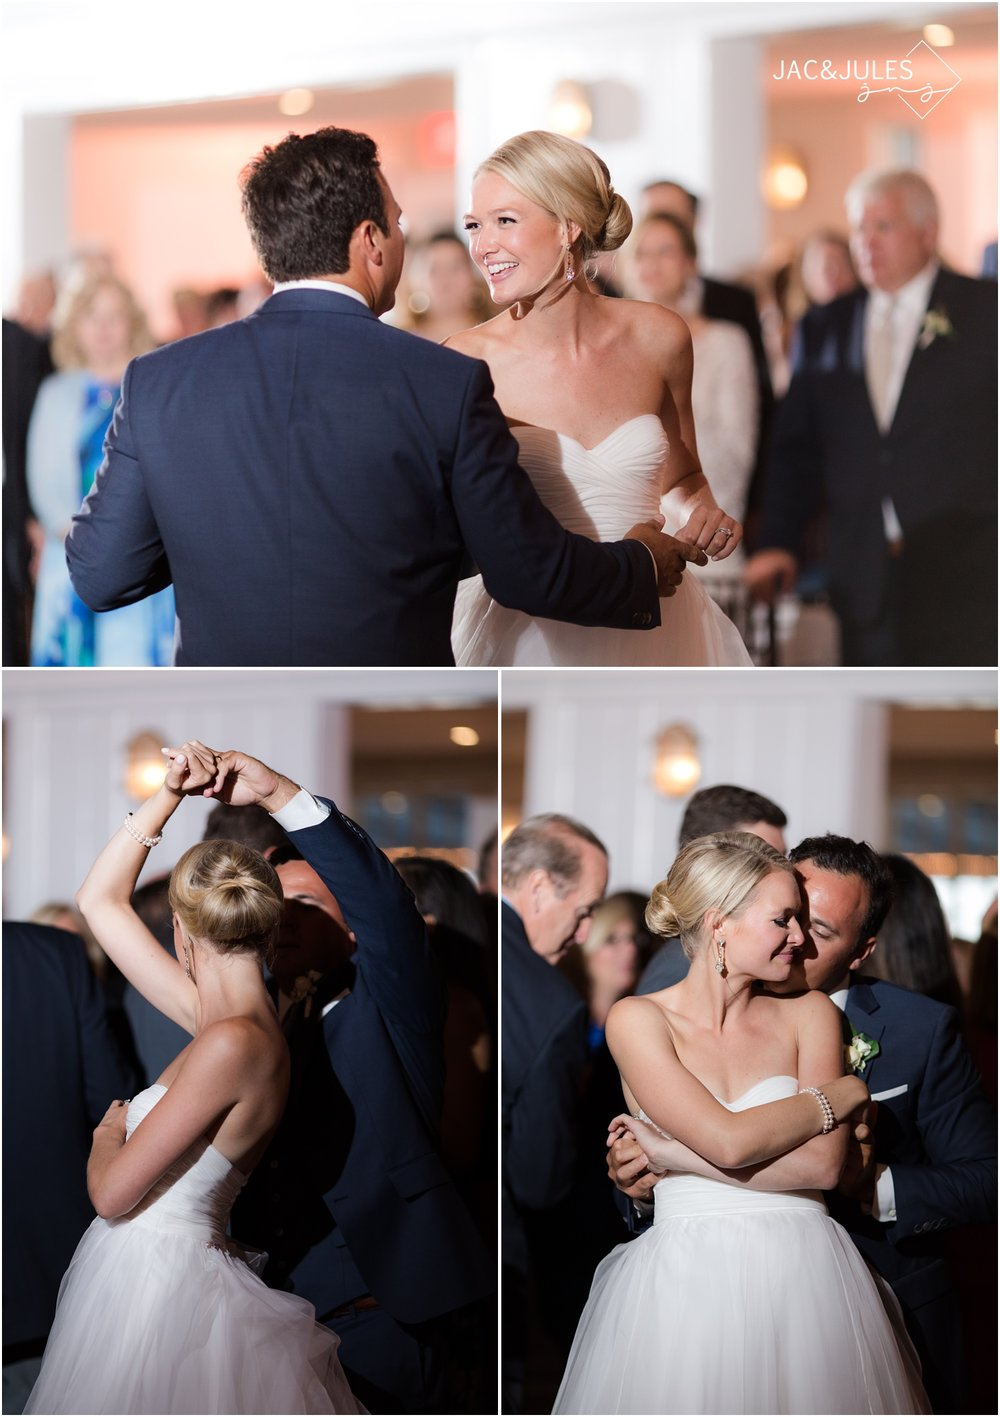 Bride and groom first dance at Bay Head Yacht Club.